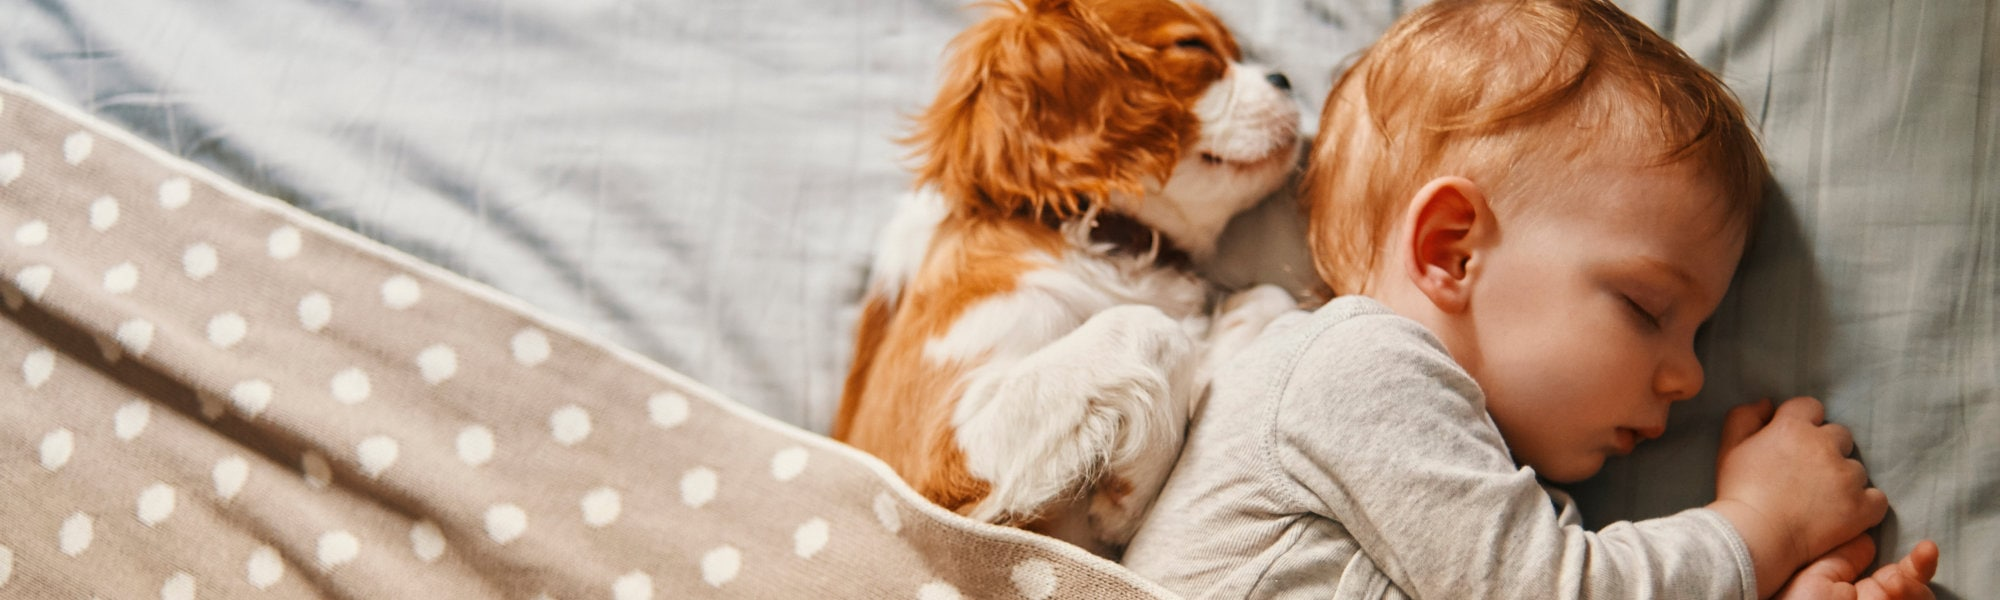 A sleeping baby with dog.